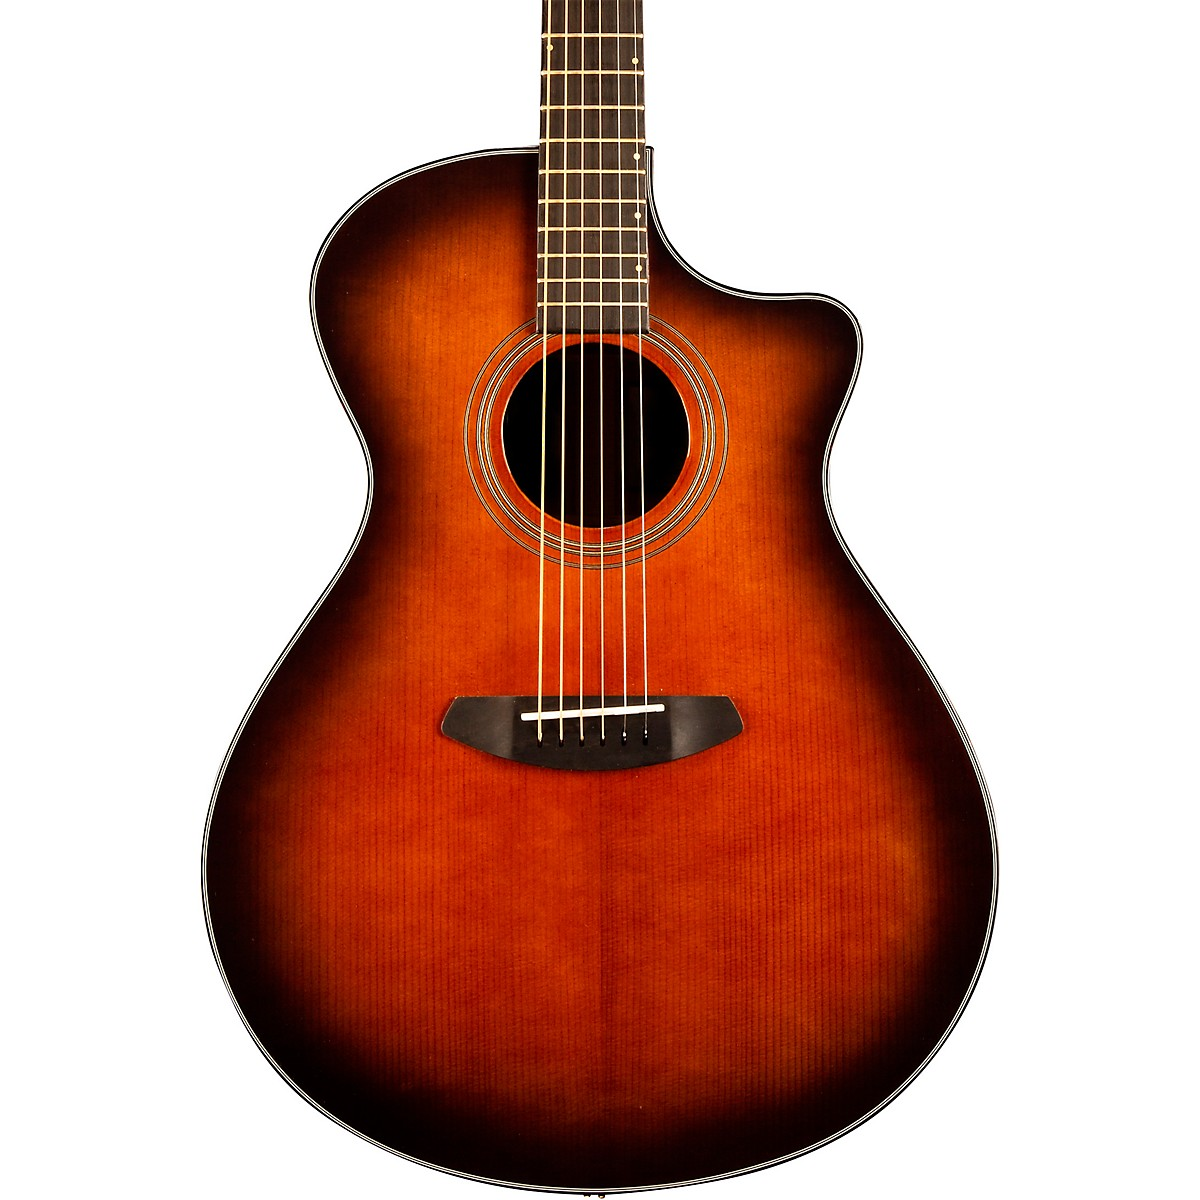 Breedlove Organic Collection Performer Concerto Cutaway CE Acoustic-Electric Guitar